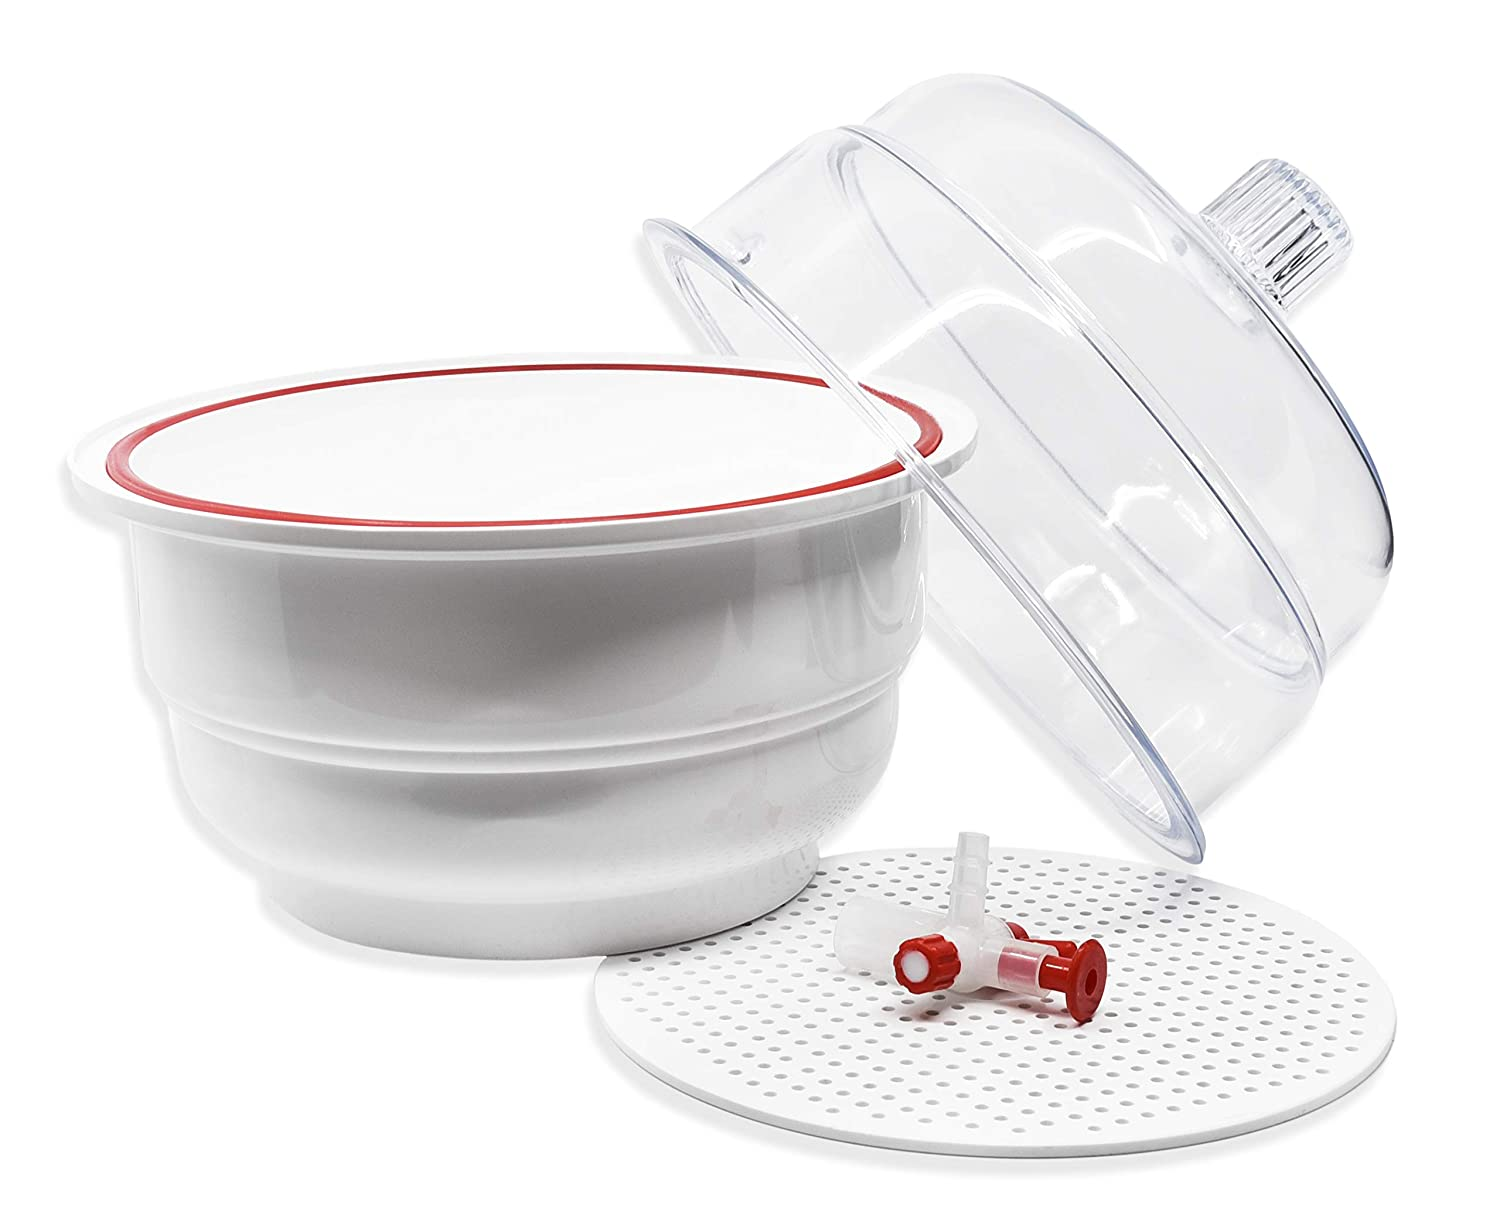 Desiccator Vacuum, 20cm - Silicone O-Ring - Polypropylene and Polycarbonate - PTFE Plug and Stopcock - Flat Dome - Autoclavable - 740mm Hg for 24 Hours - Eisco Labs